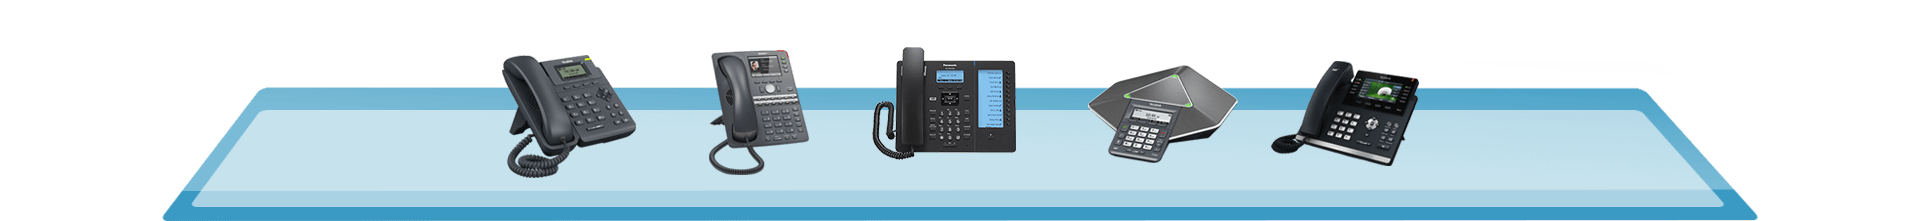 s-series connect IP phone